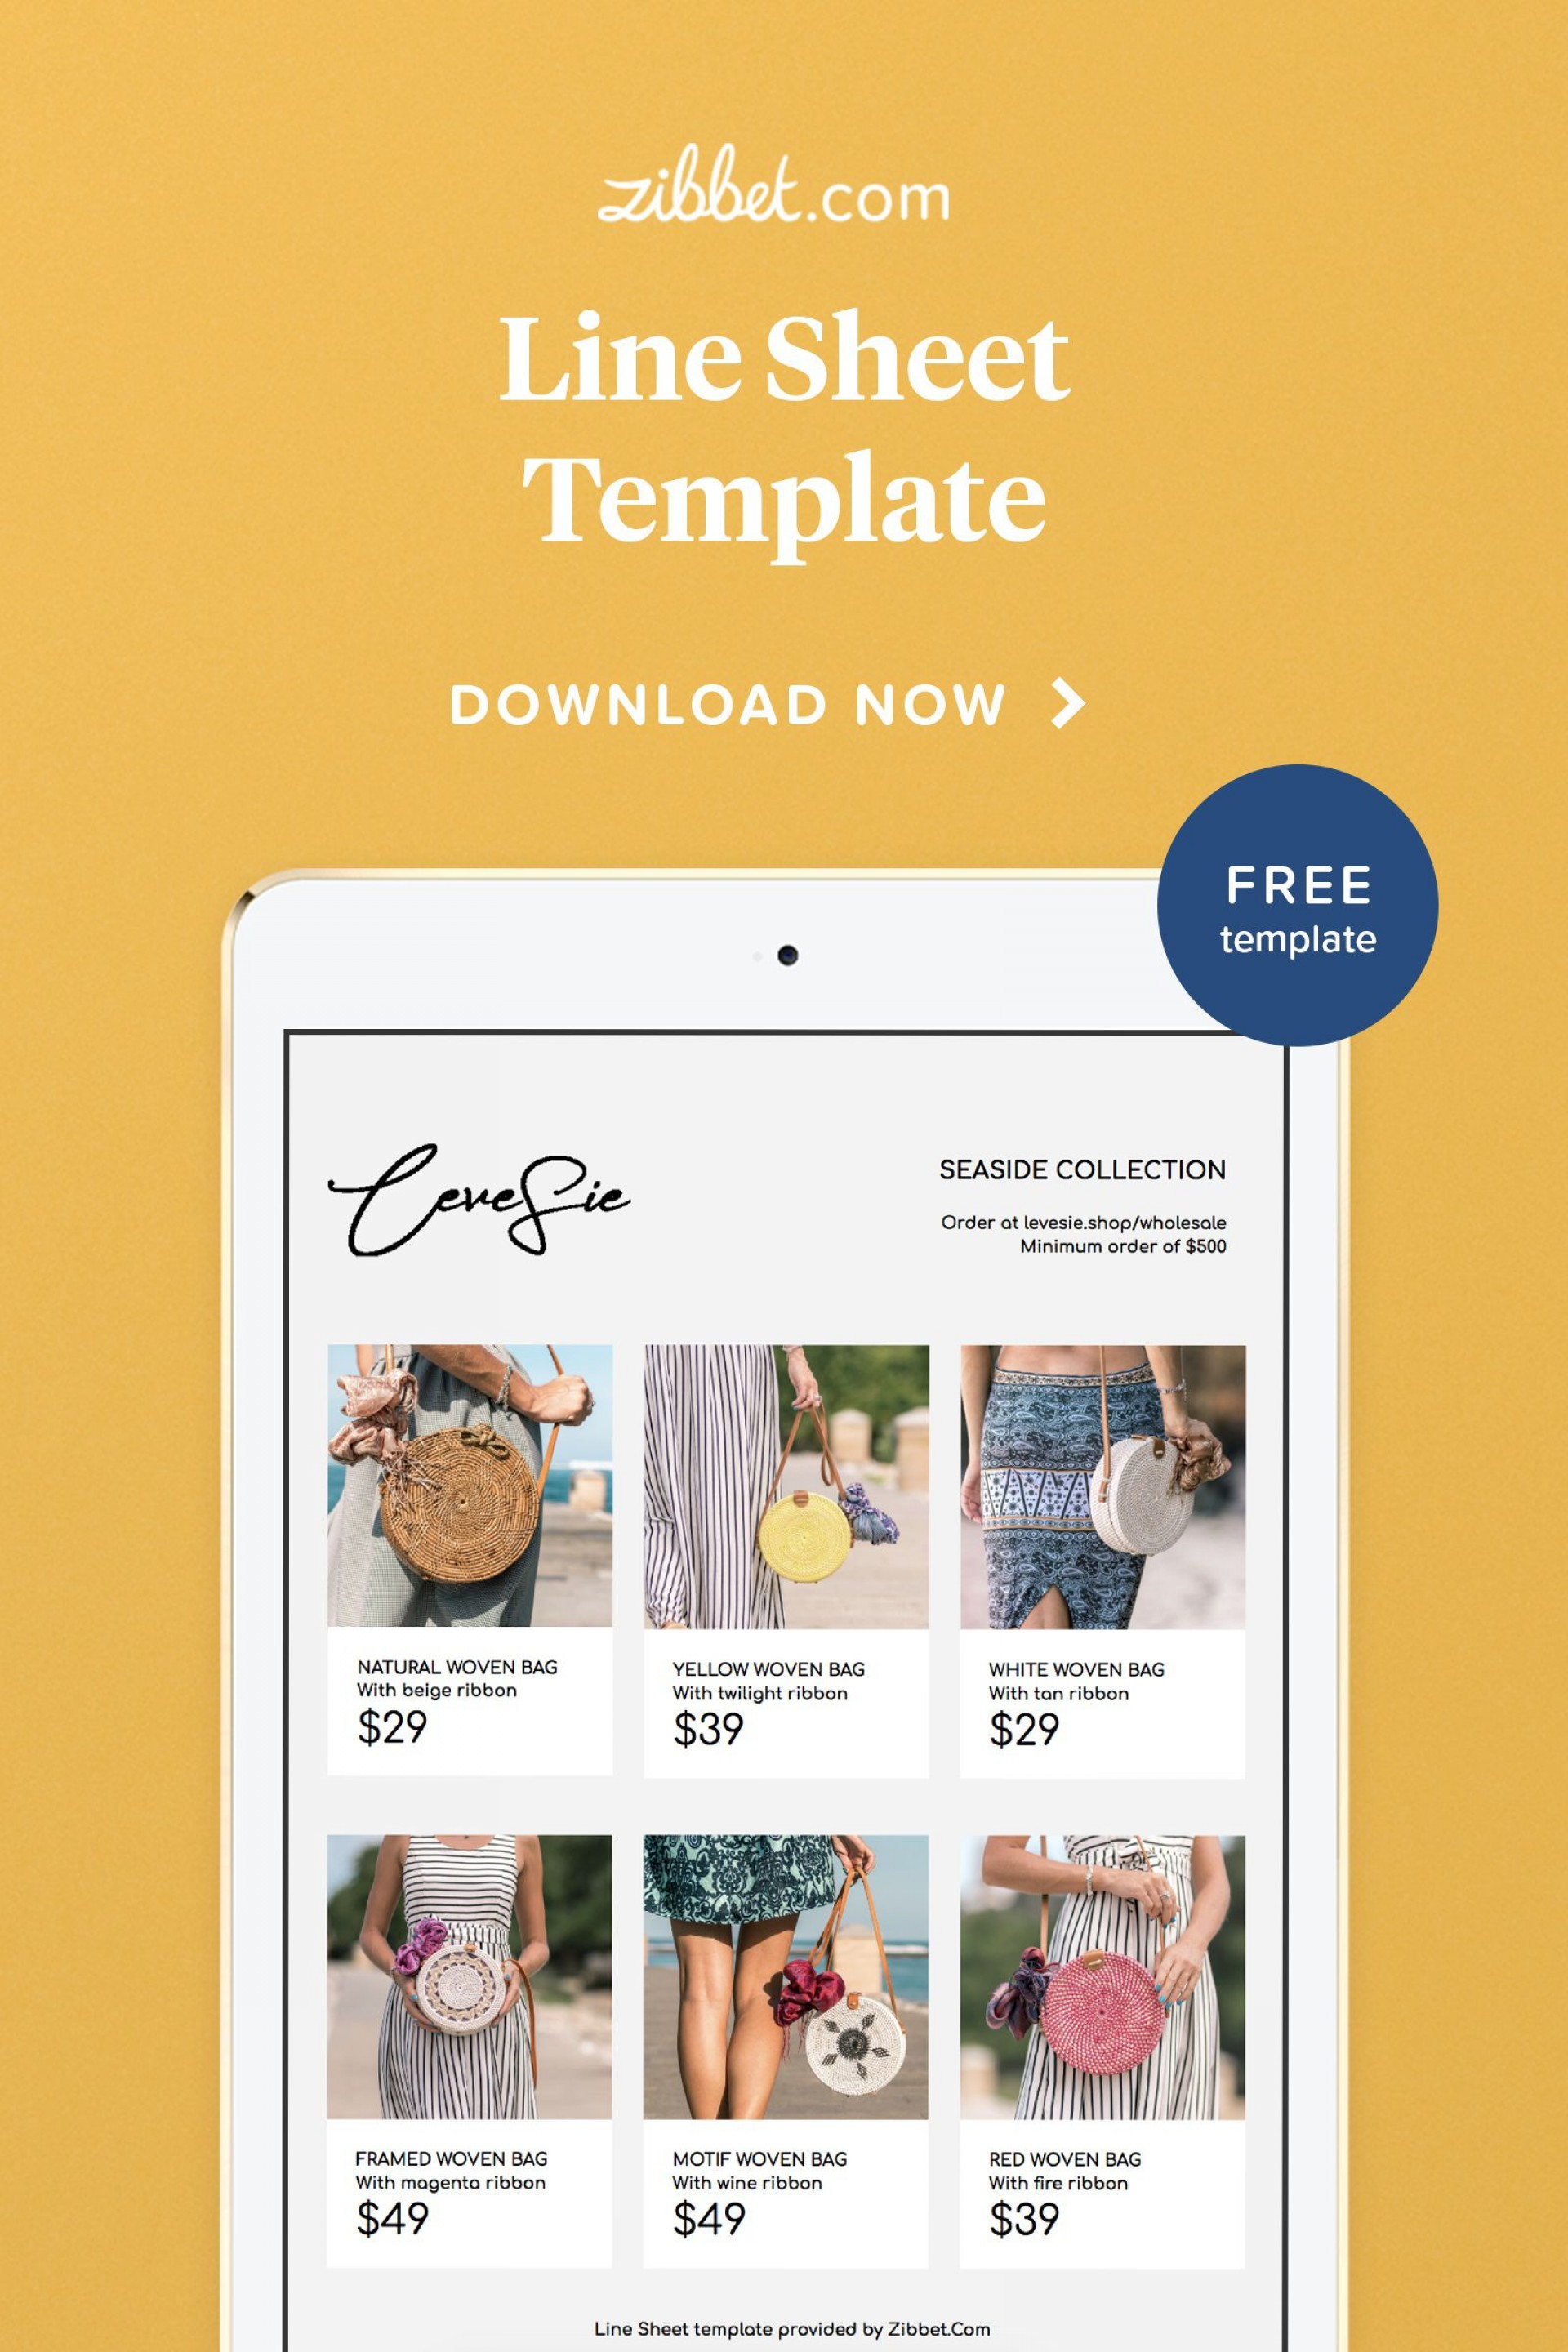 009 Staggering Wholesale Line Sheet Template Image  Fashion Free Excel1920